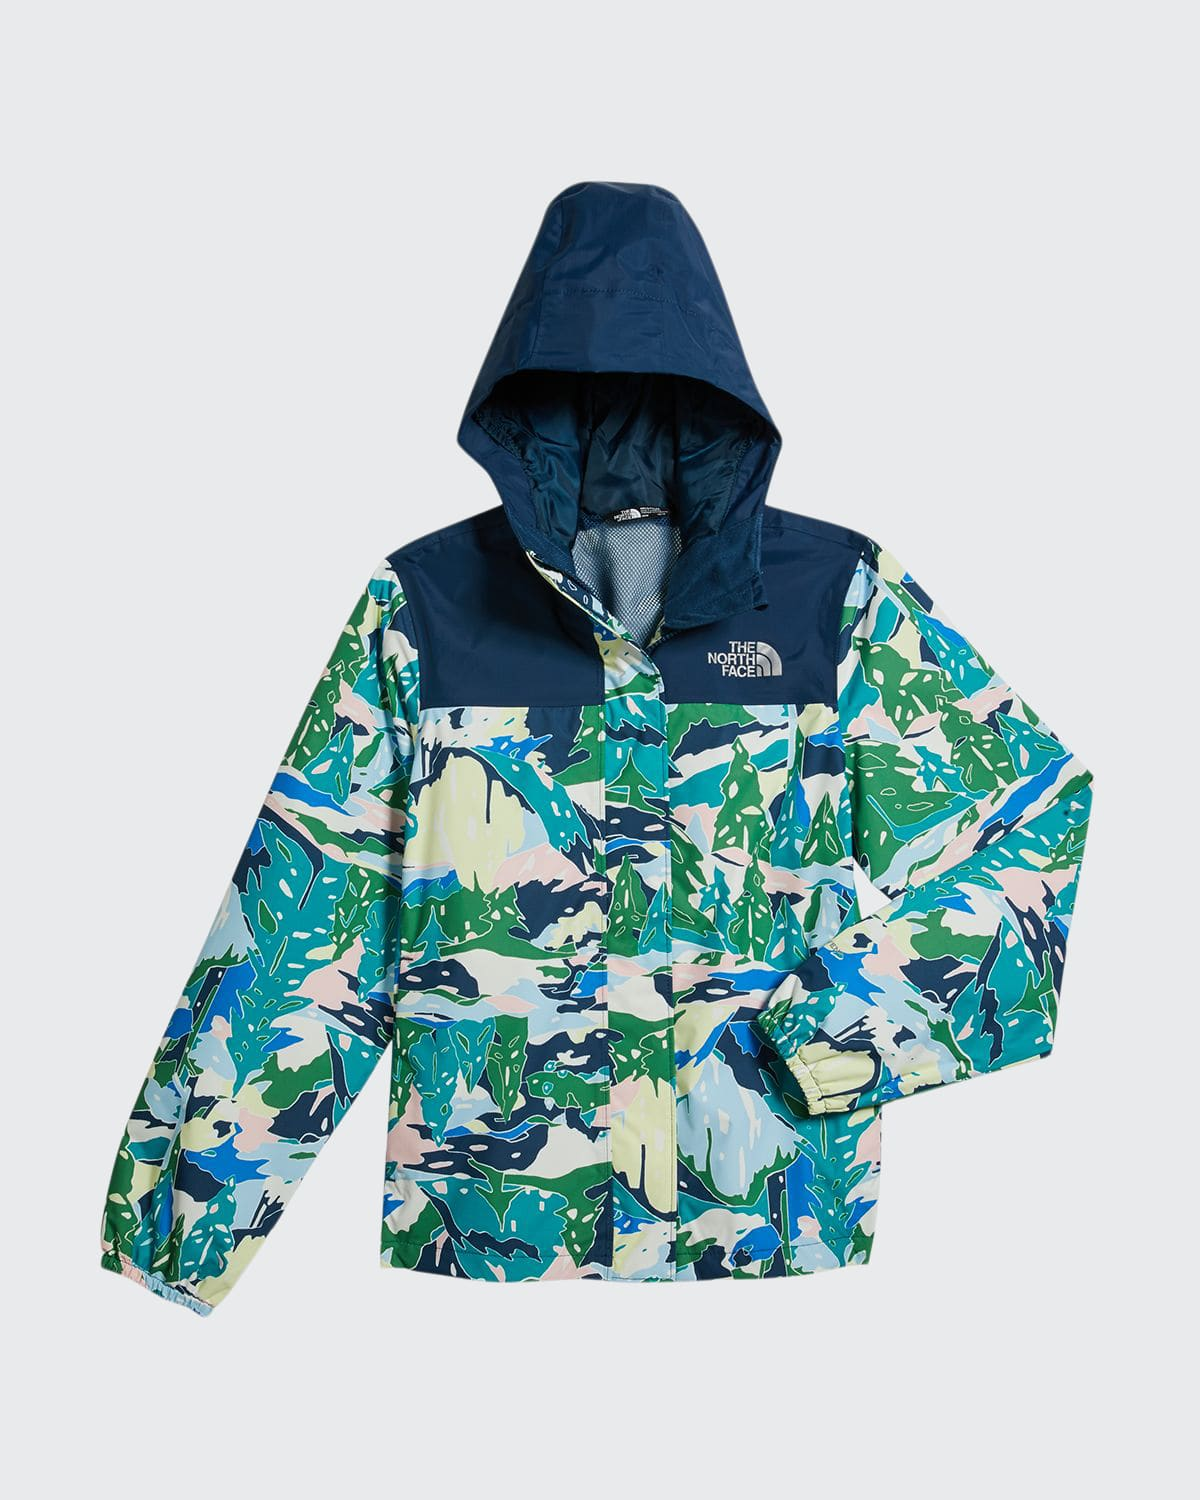 The North Face GIRL'S RESOLVE REFLECTIVE PRINTED JACKET